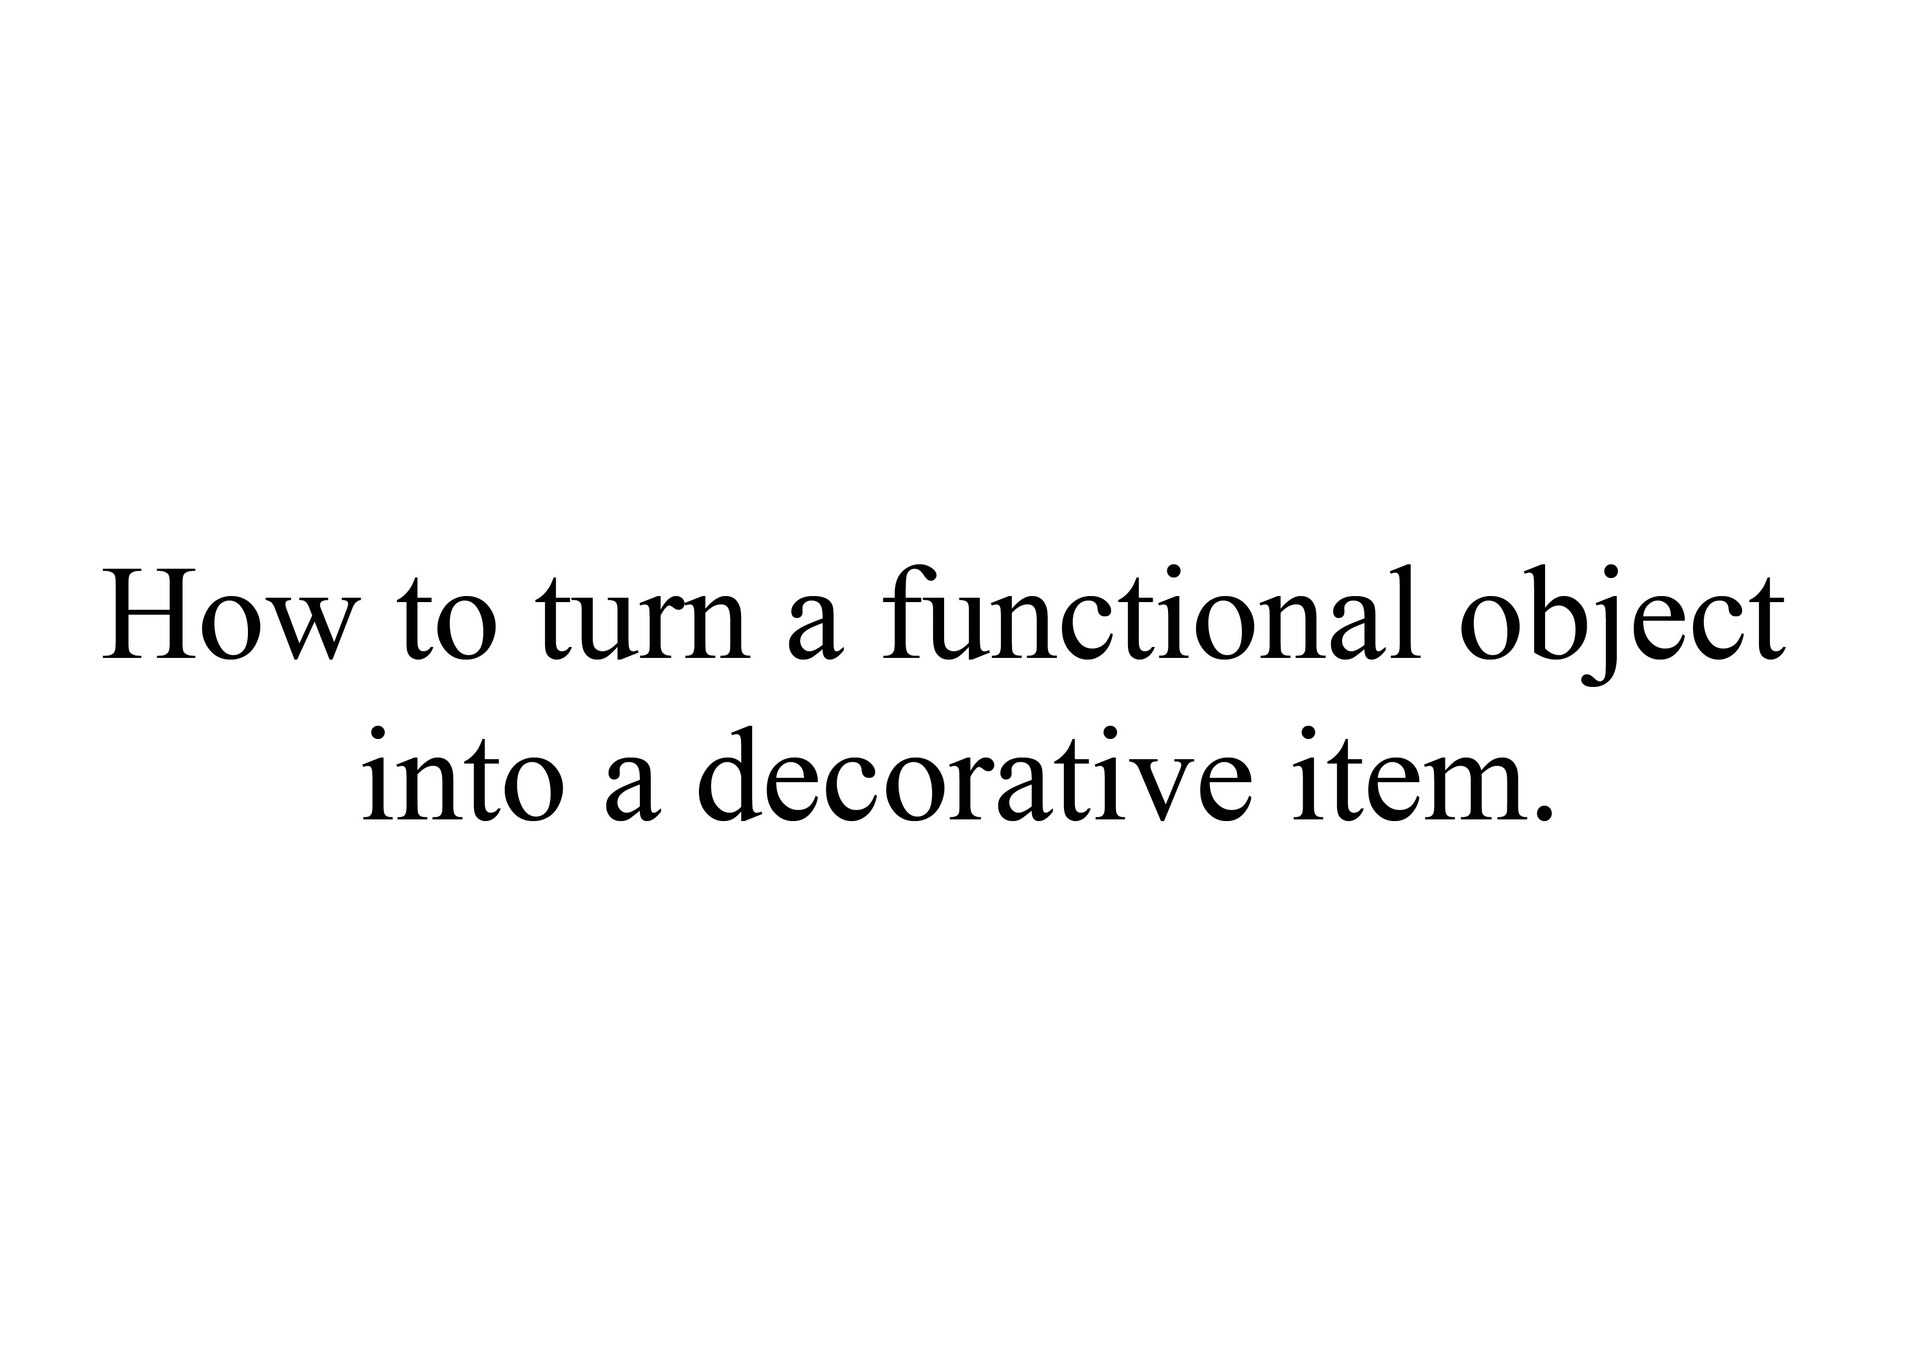 HOW TO TURN A FUNCTIONAL OBJECT INTO A DECORATIVE ITEM